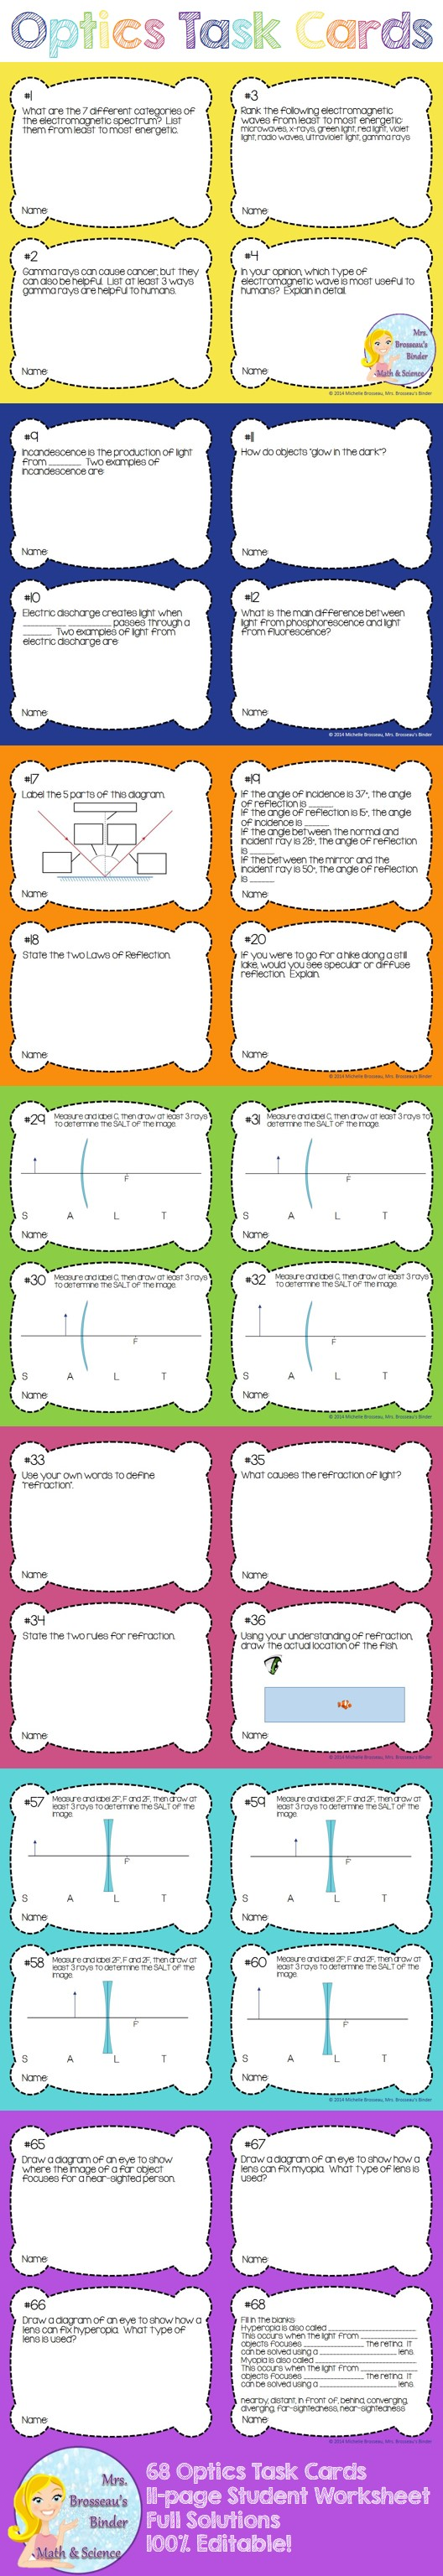 small resolution of Optics Task Cards - 68 Cards with student worksheets and full solutions!  Topics: Electromagnetic Spectrum